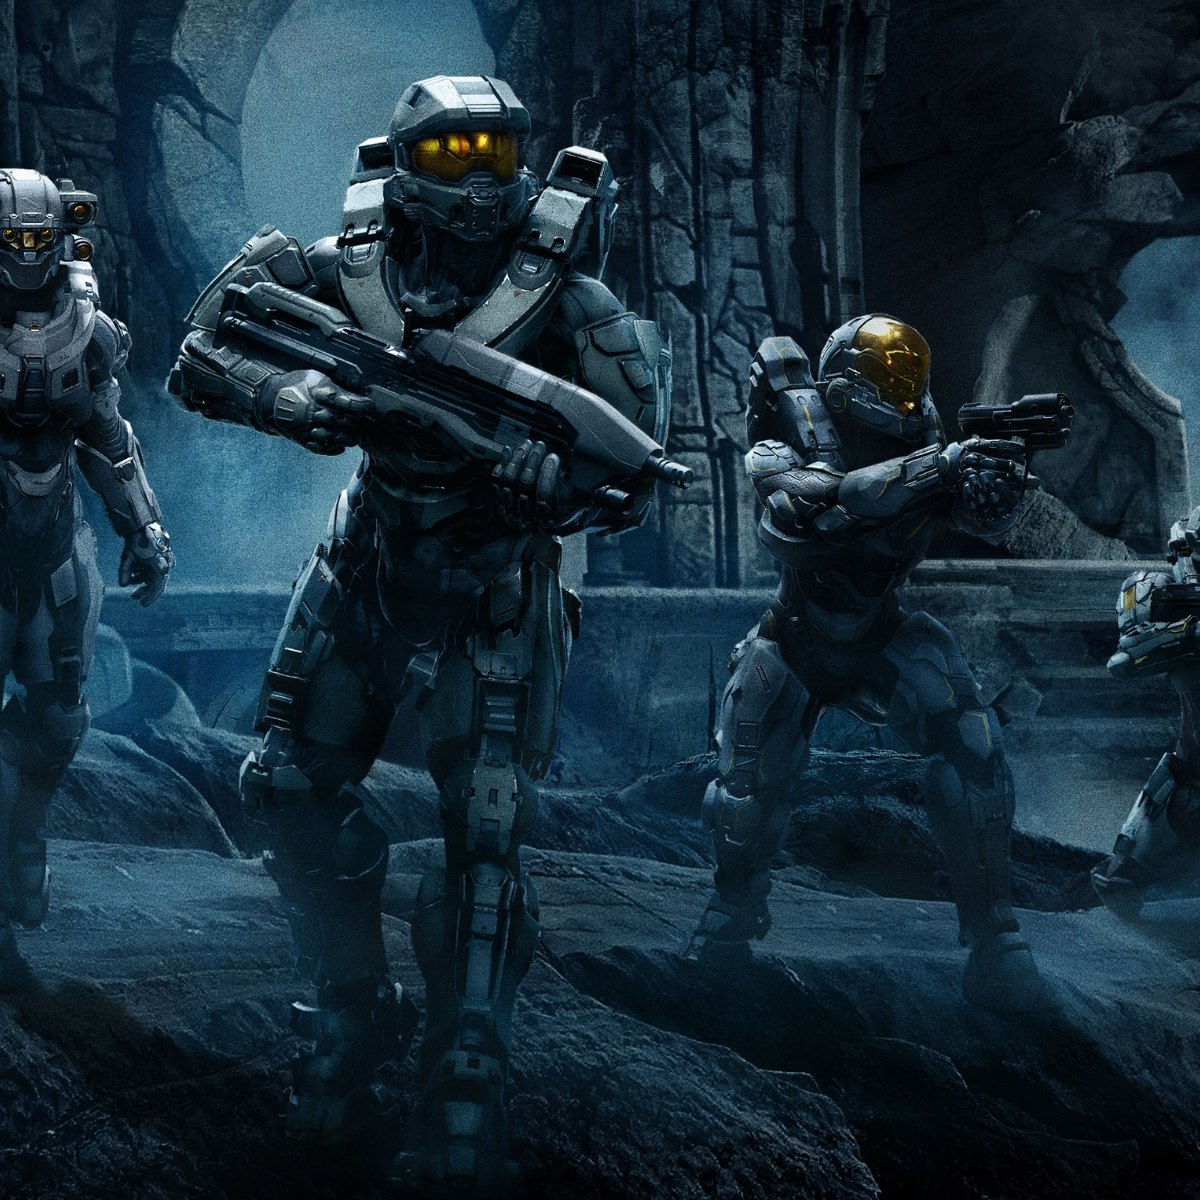 Halo Live Wallpaper: Halo 5 Official Wallpaper